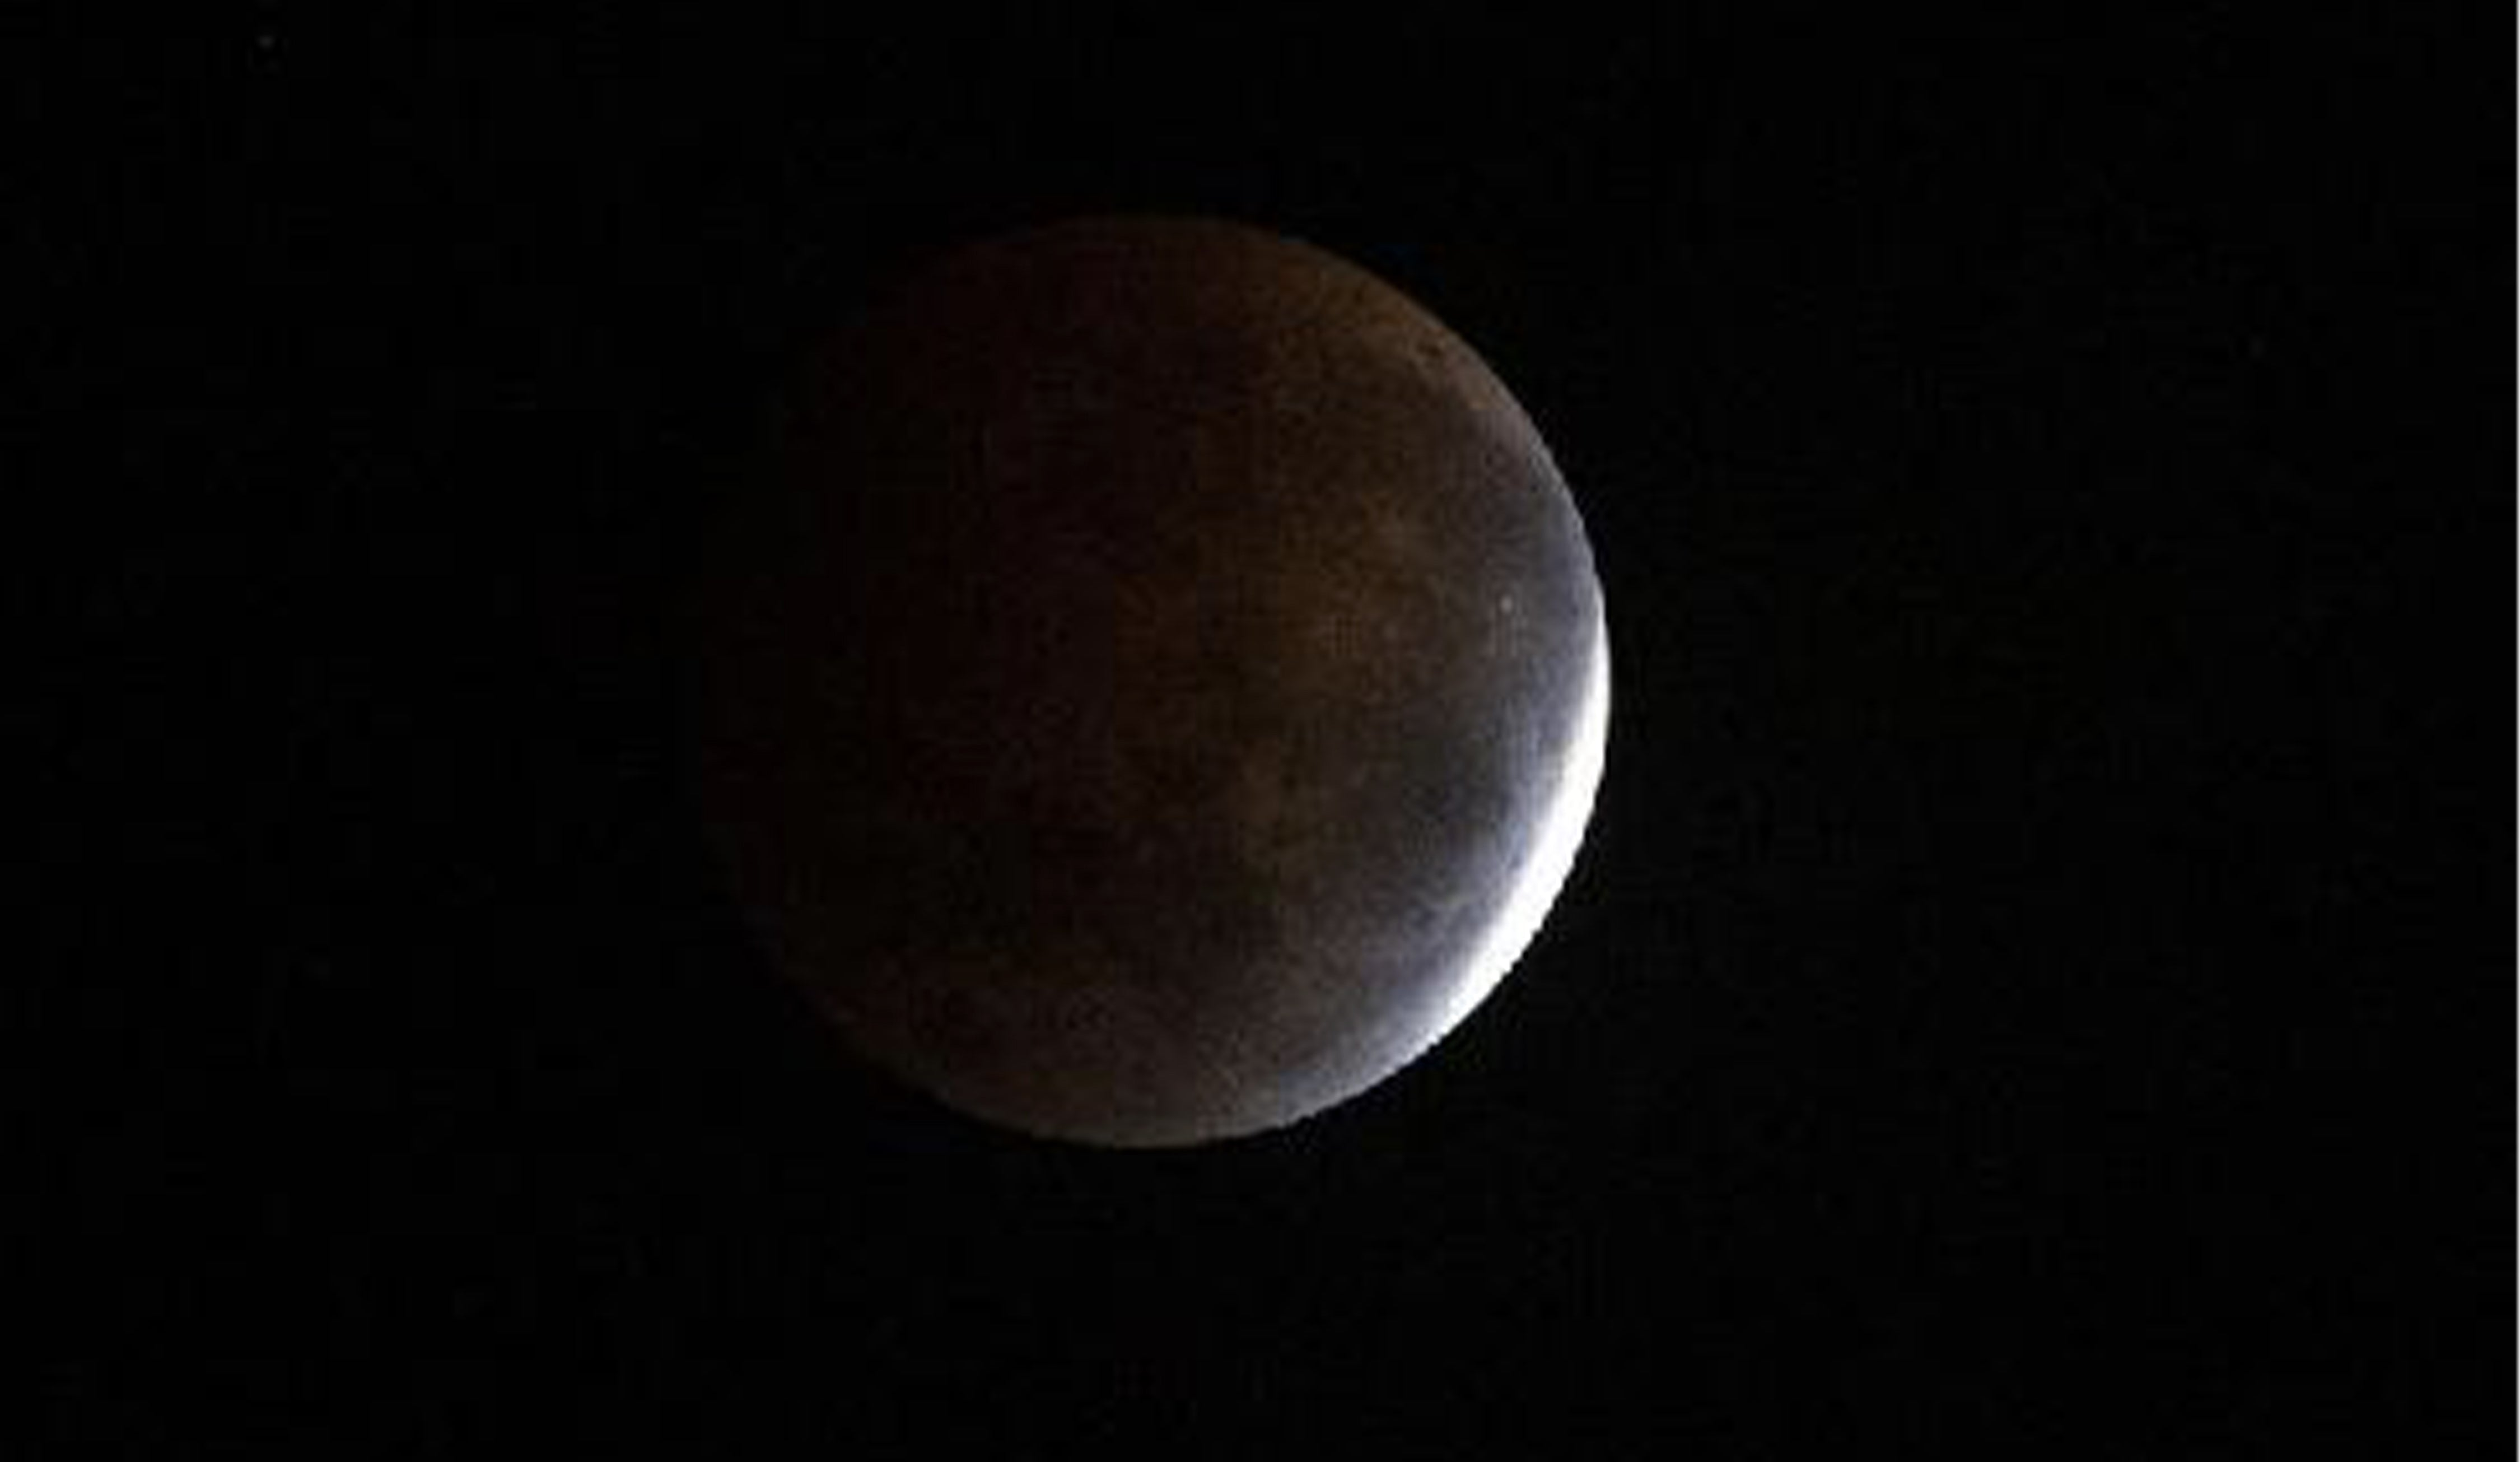 A partial solar eclipse will cross the northern hemisphere